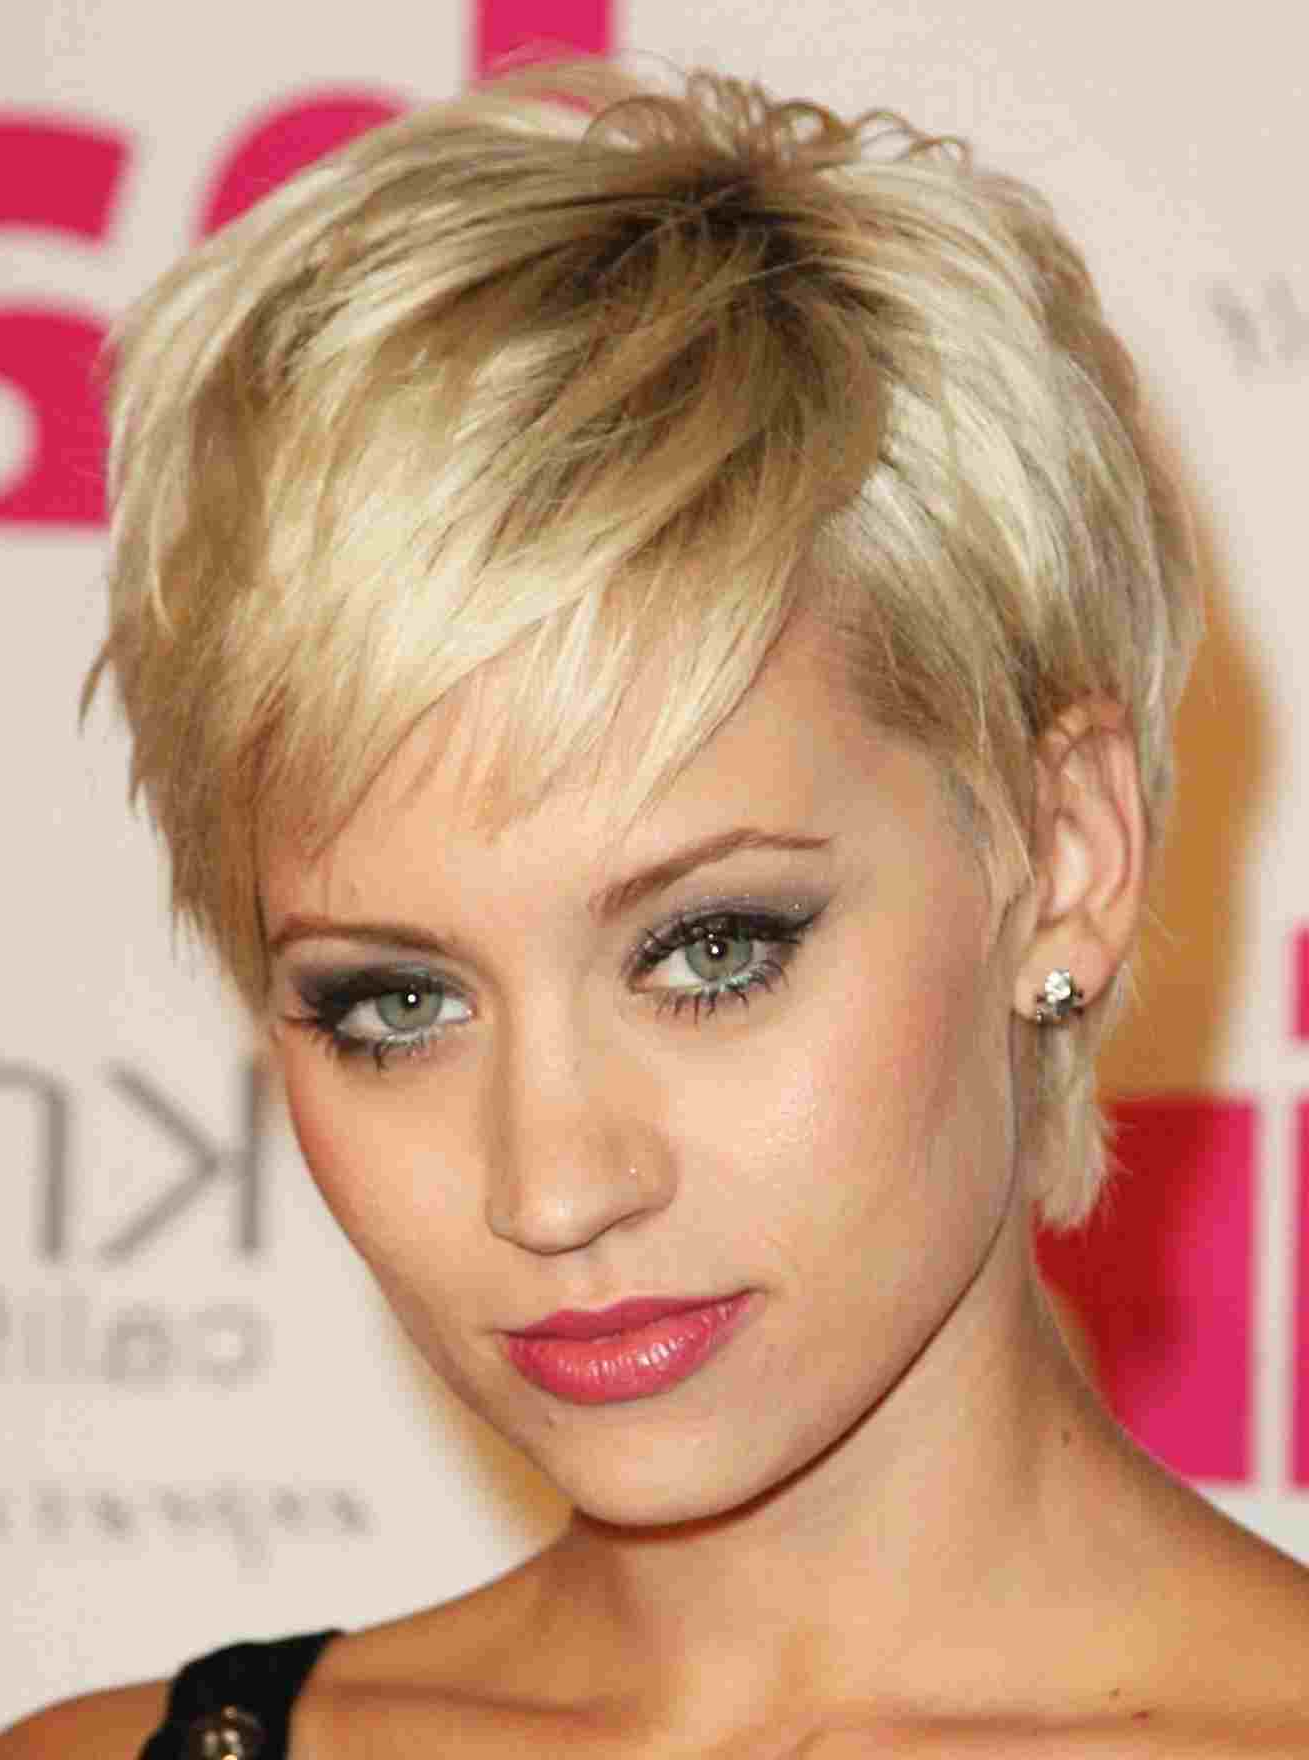 S Plus Size Best Rhwapsiteus Hairstyle Neck Of Rhhollywoodhillsus Inside Short Hairstyles For Round Faces With Double Chin (View 24 of 25)